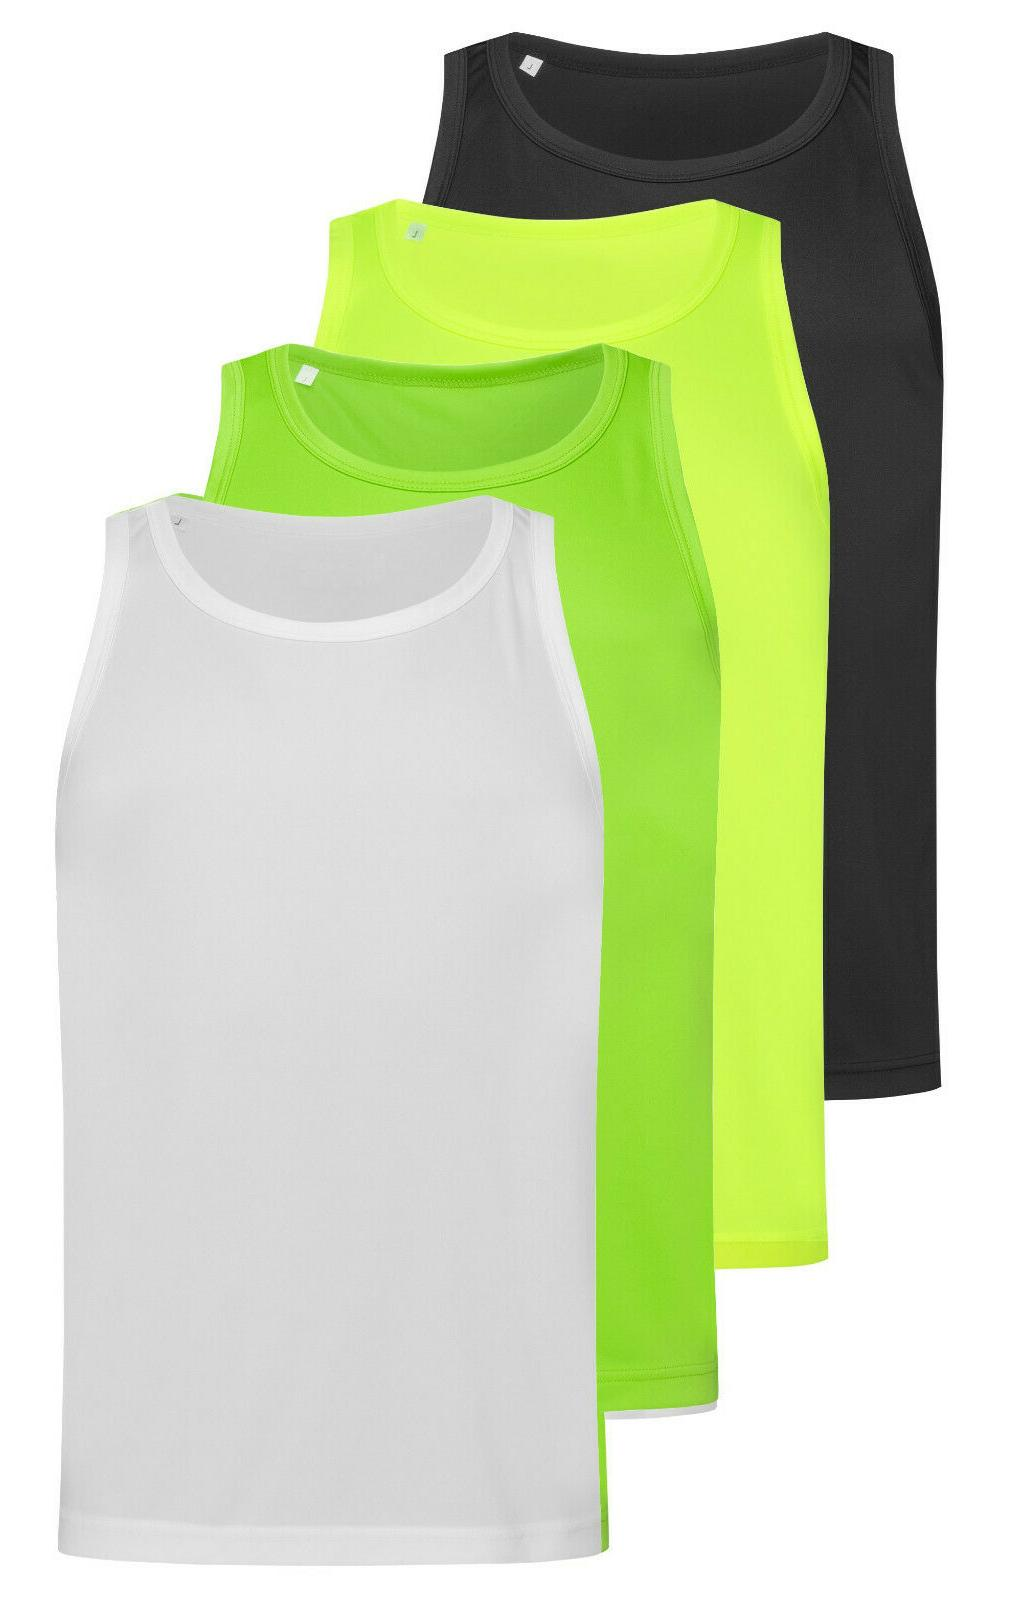 active dry breathable polyester sports tank top